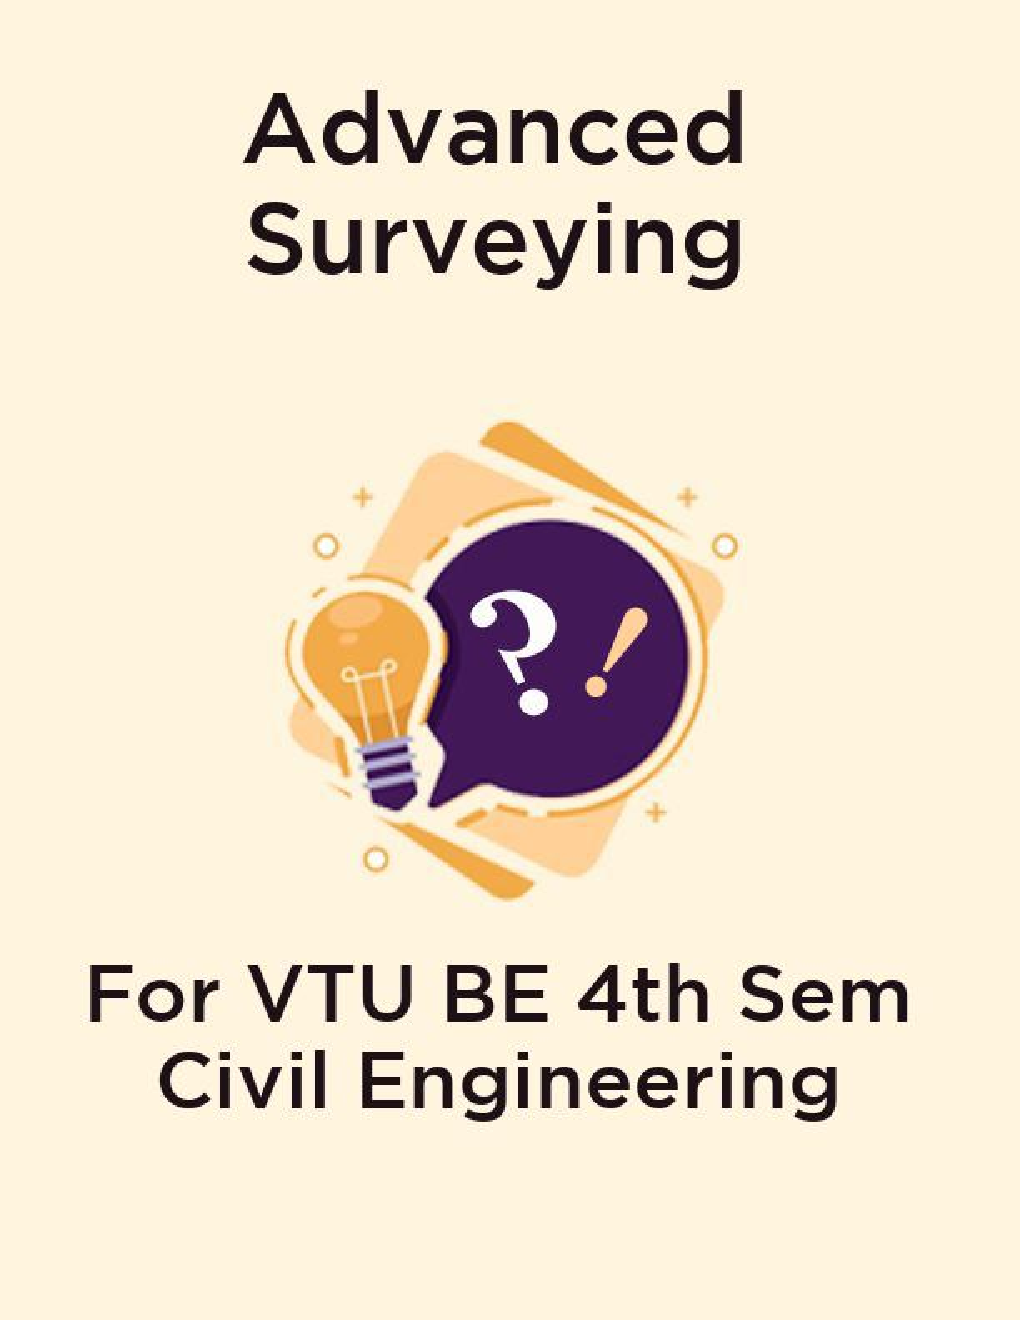 Advanced Surveying For VTU BE 4th Sem Civil Engineering - Page 1